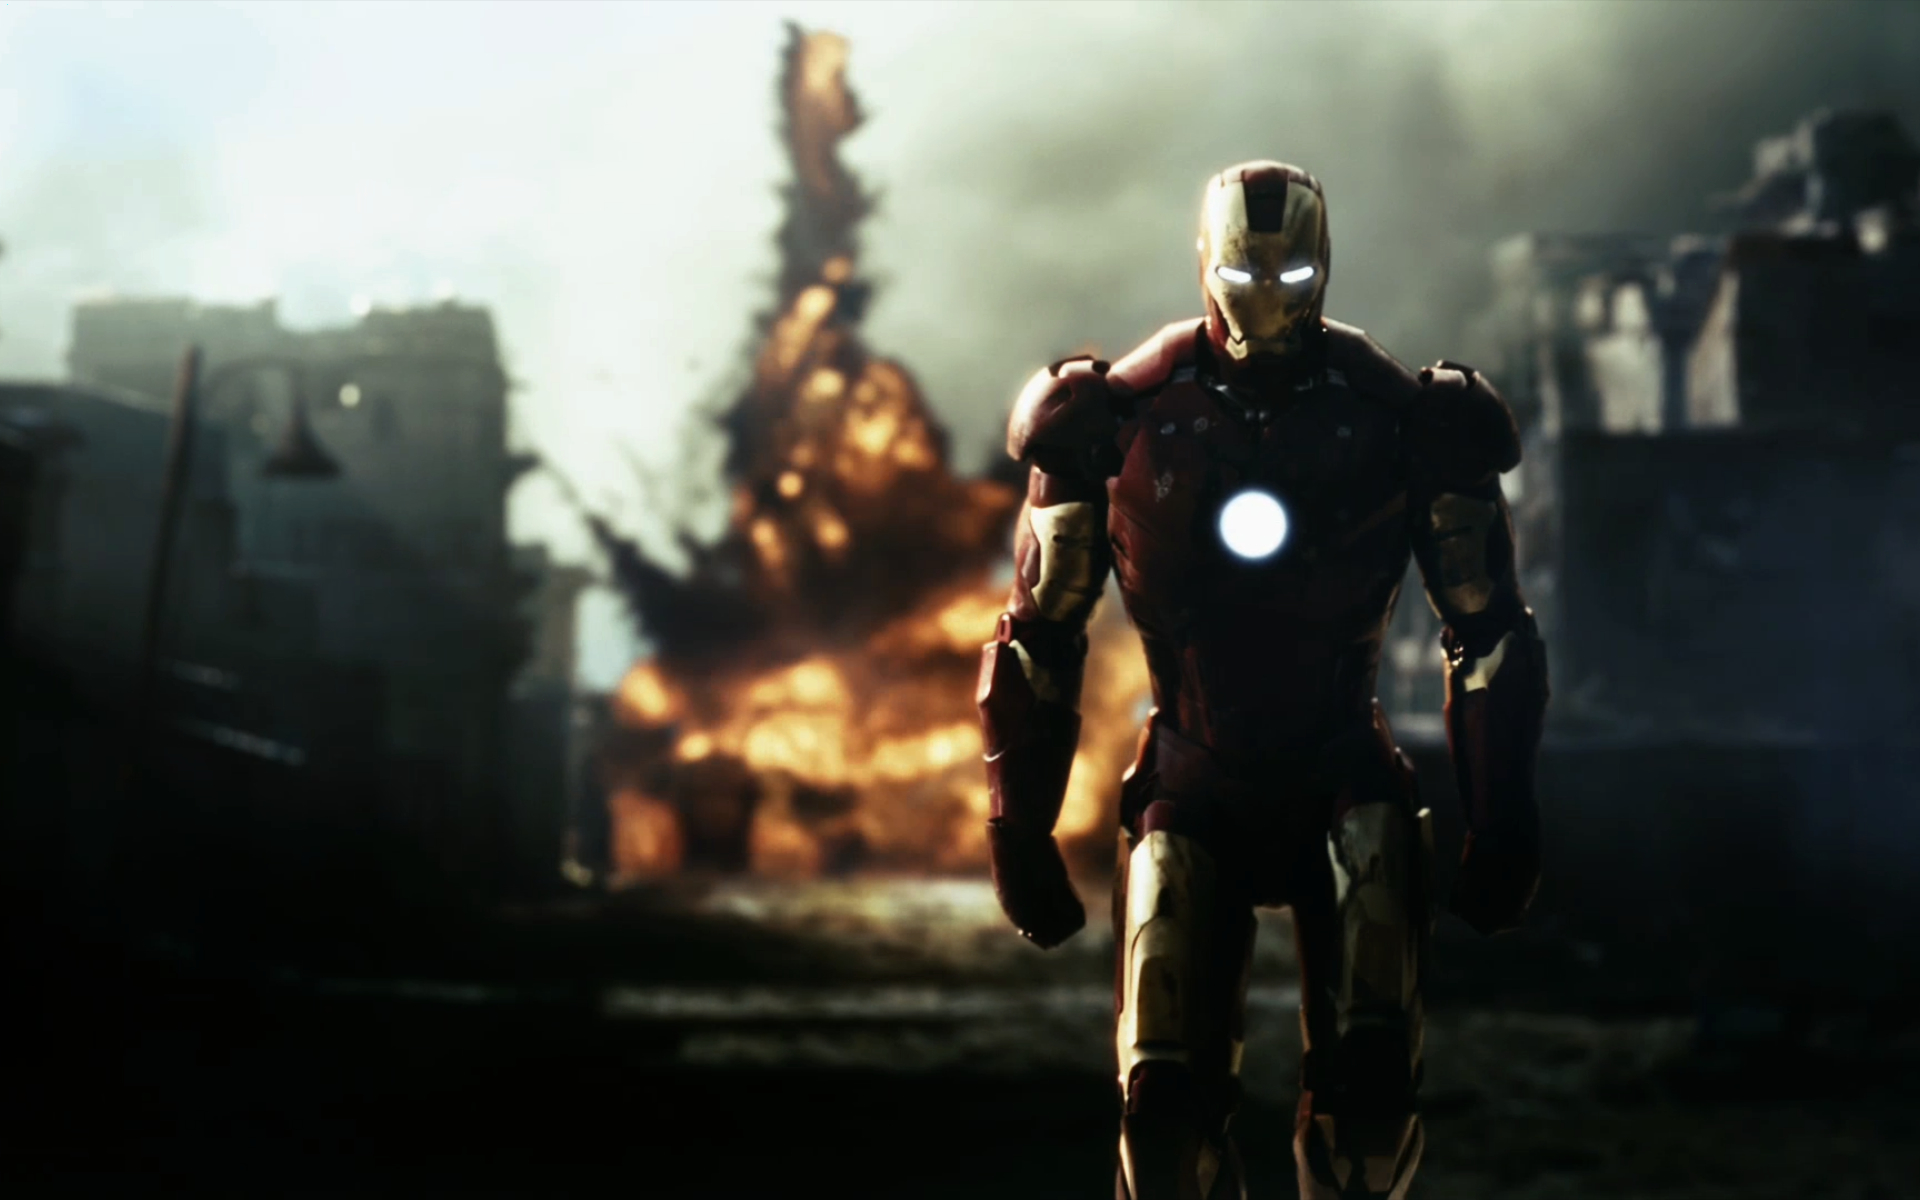 mat denan Iron Man WallPapers Desktops 1920x1200